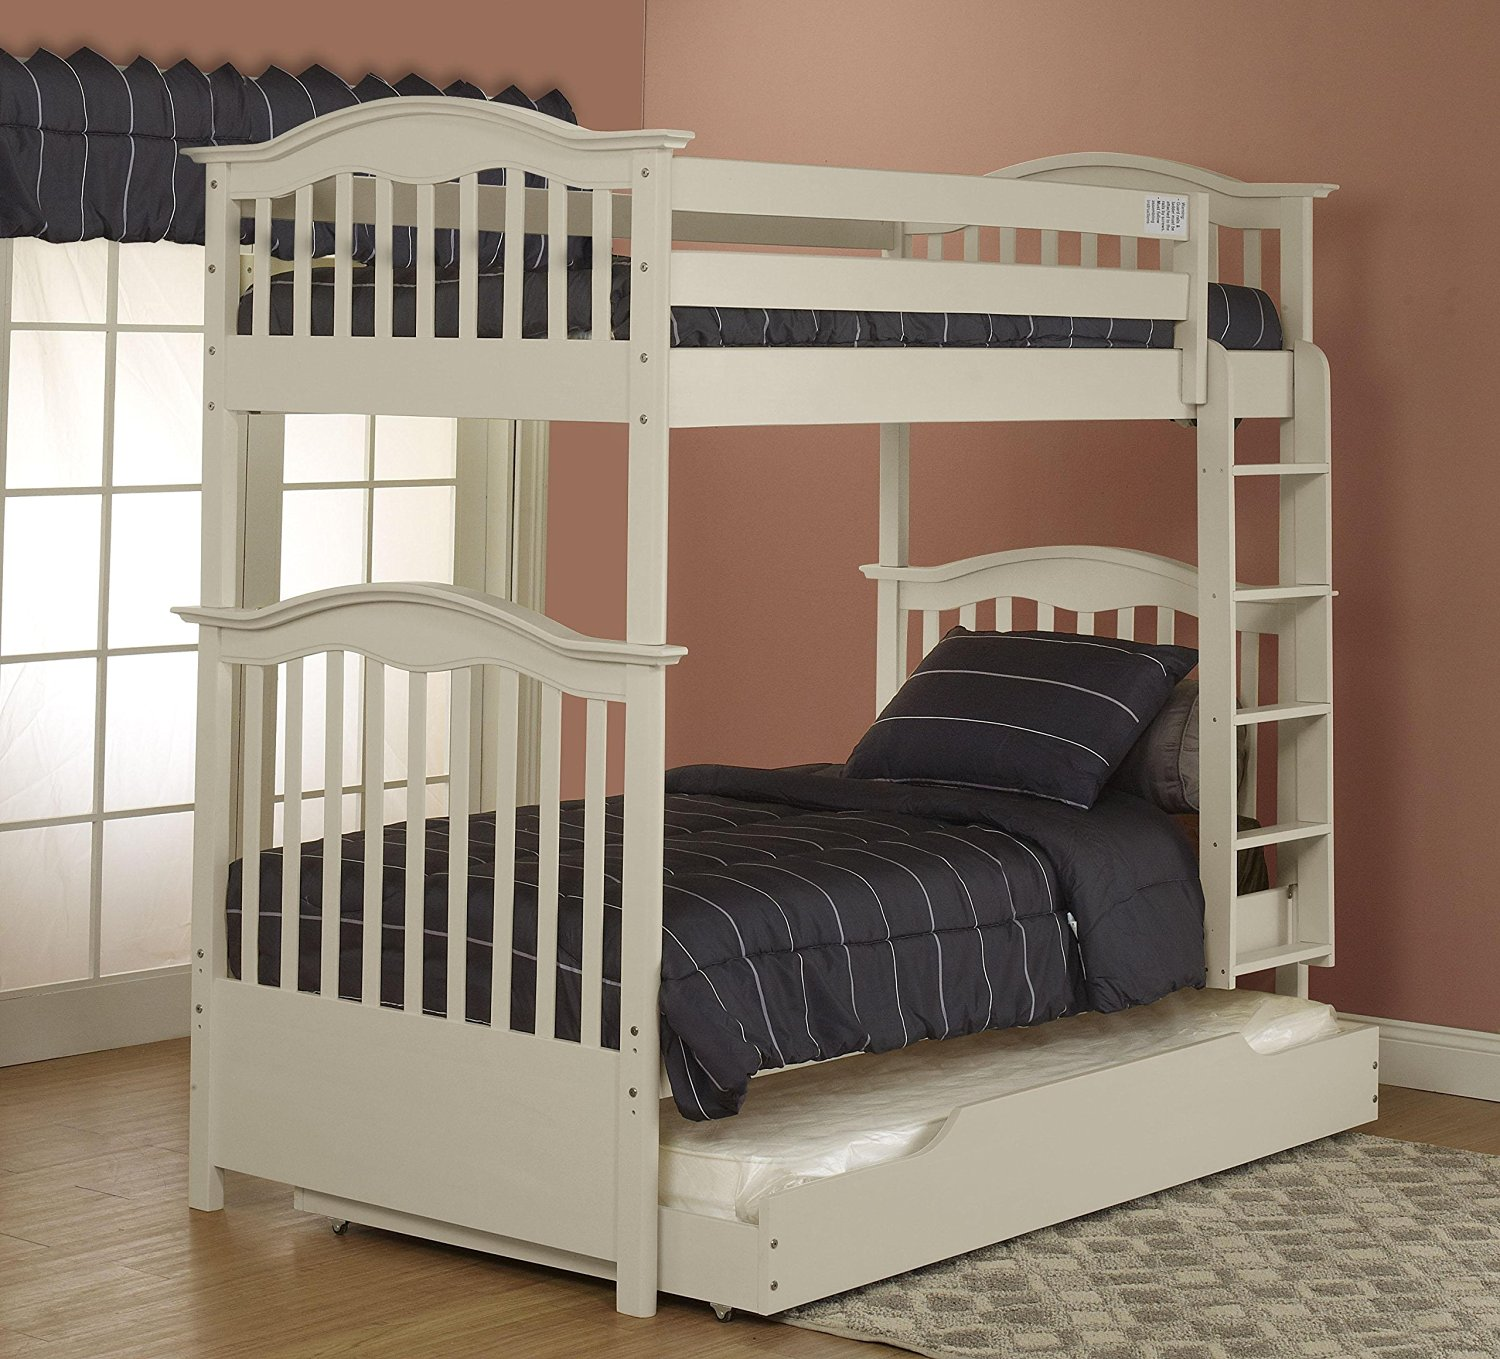 Orbelle Bunk Beds BB 480/39-FW French White